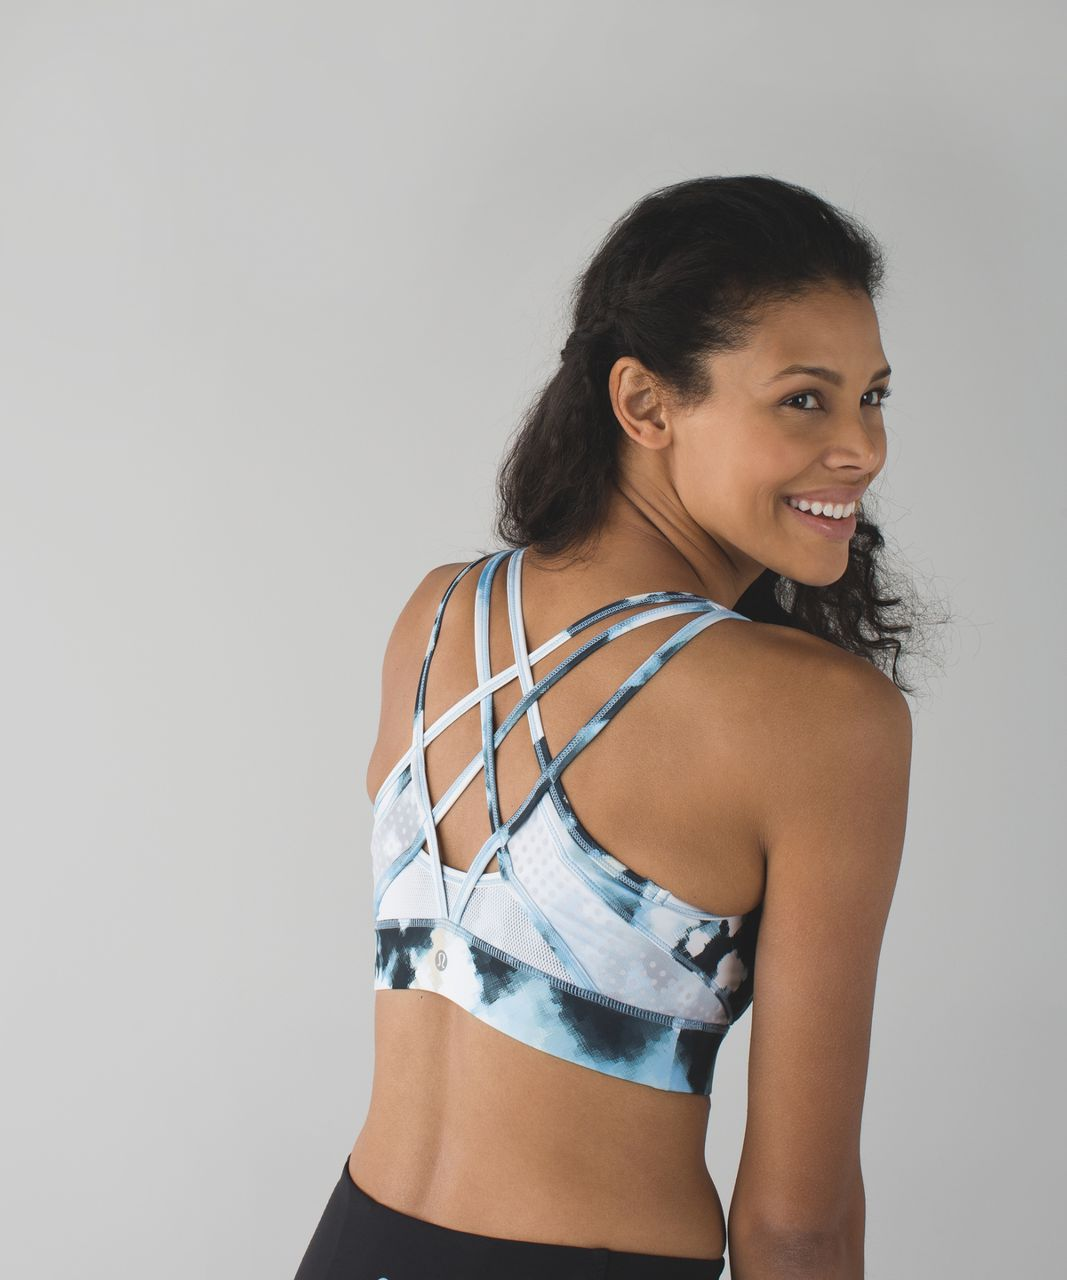 Lululemon Strap It Like It's Hot Bra - Blooming Pixie Aquamarine Multi / White